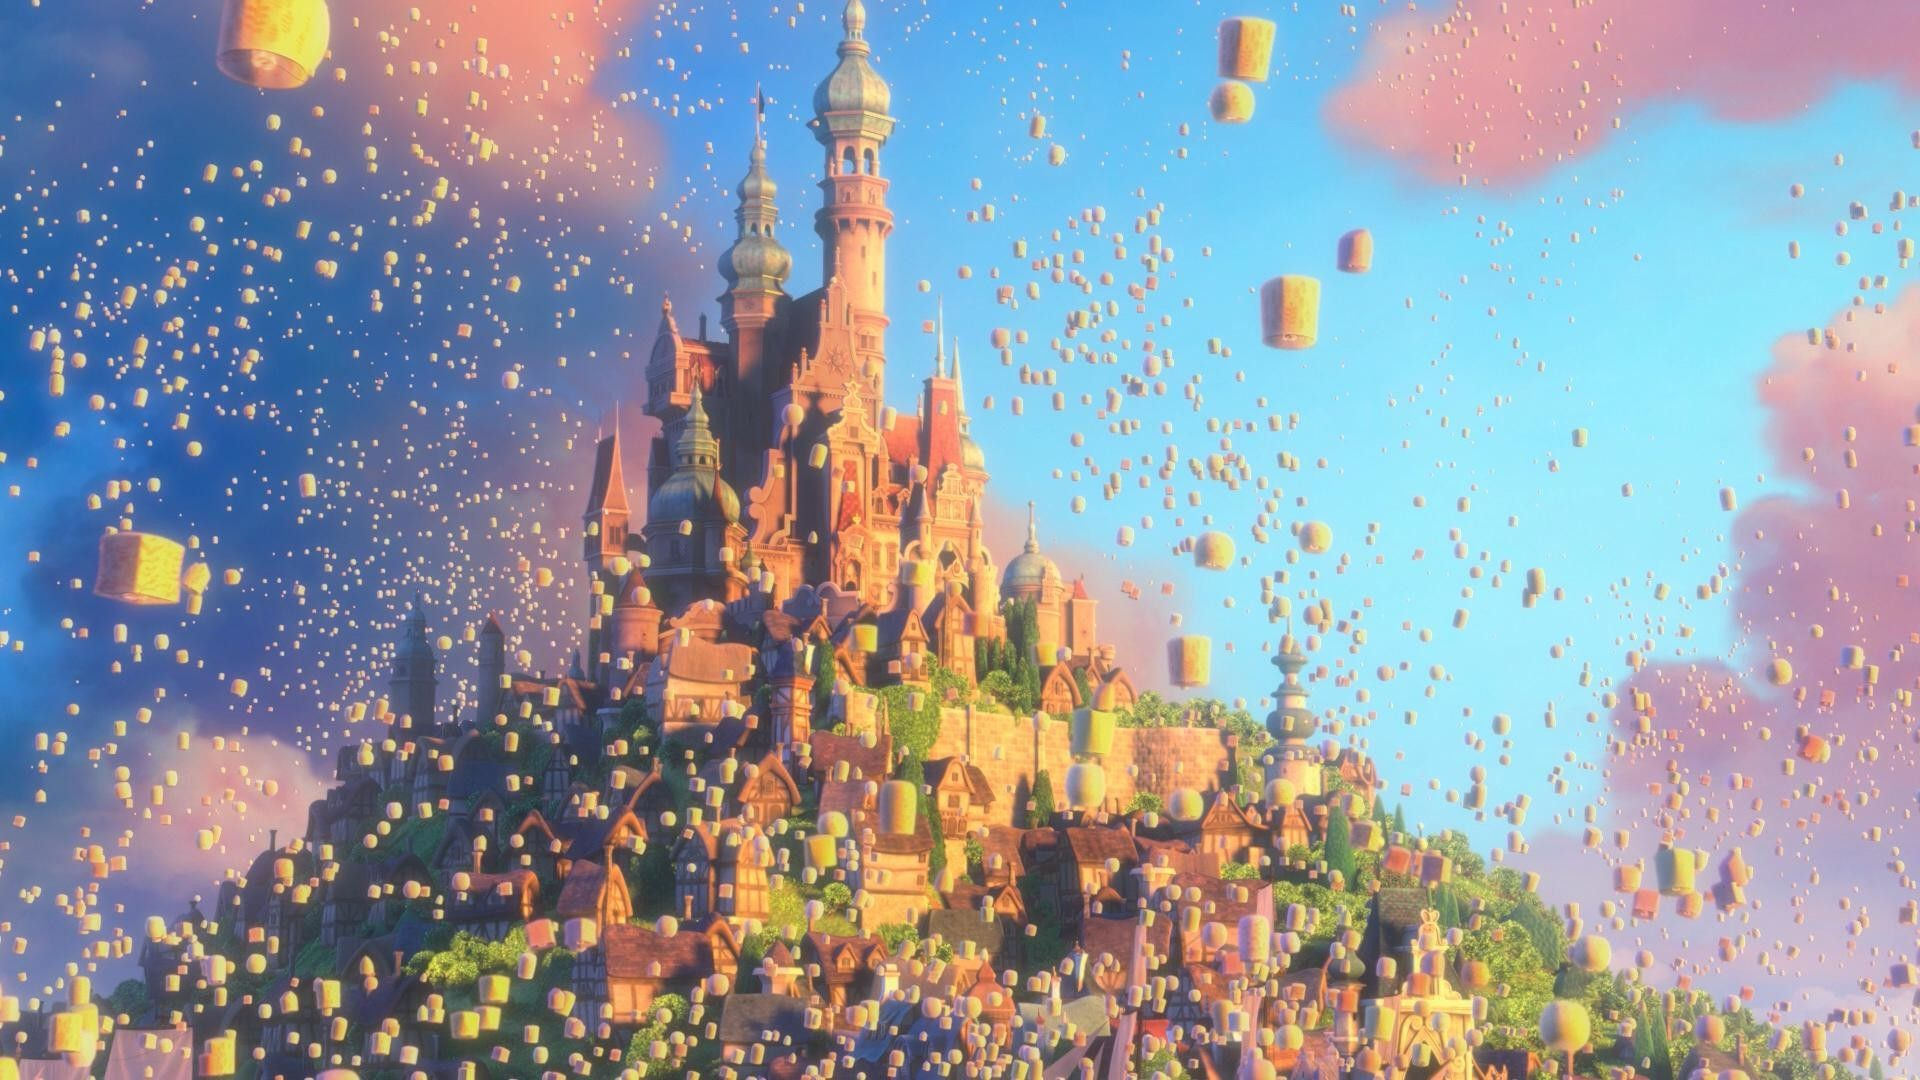 Tangled Wallpapers - Top Free Tangled